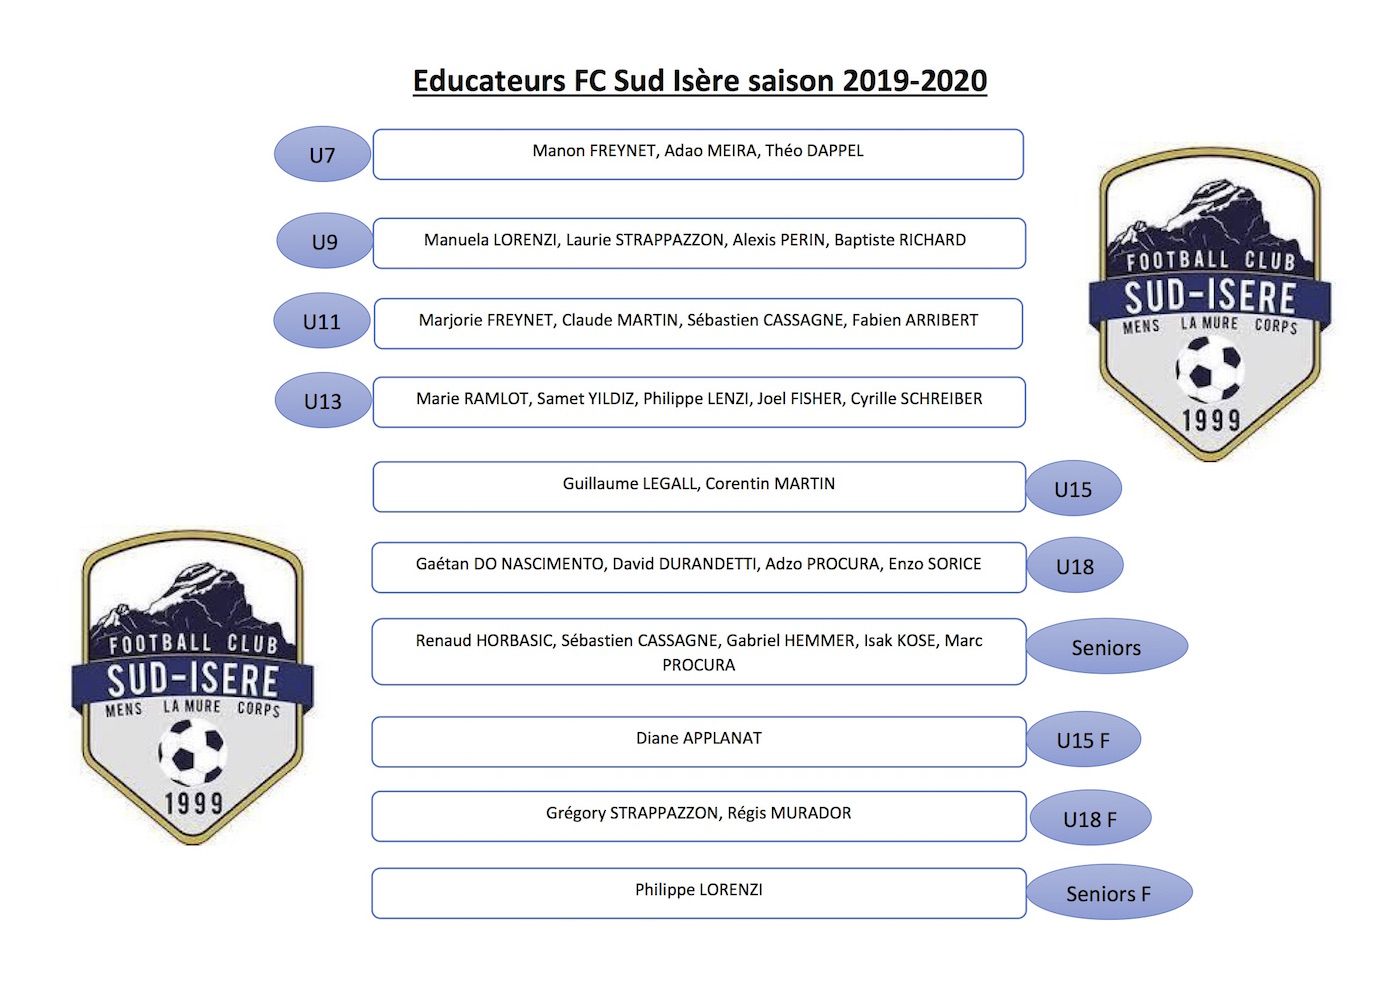 2- Educateurs du FCSI 2019-2020